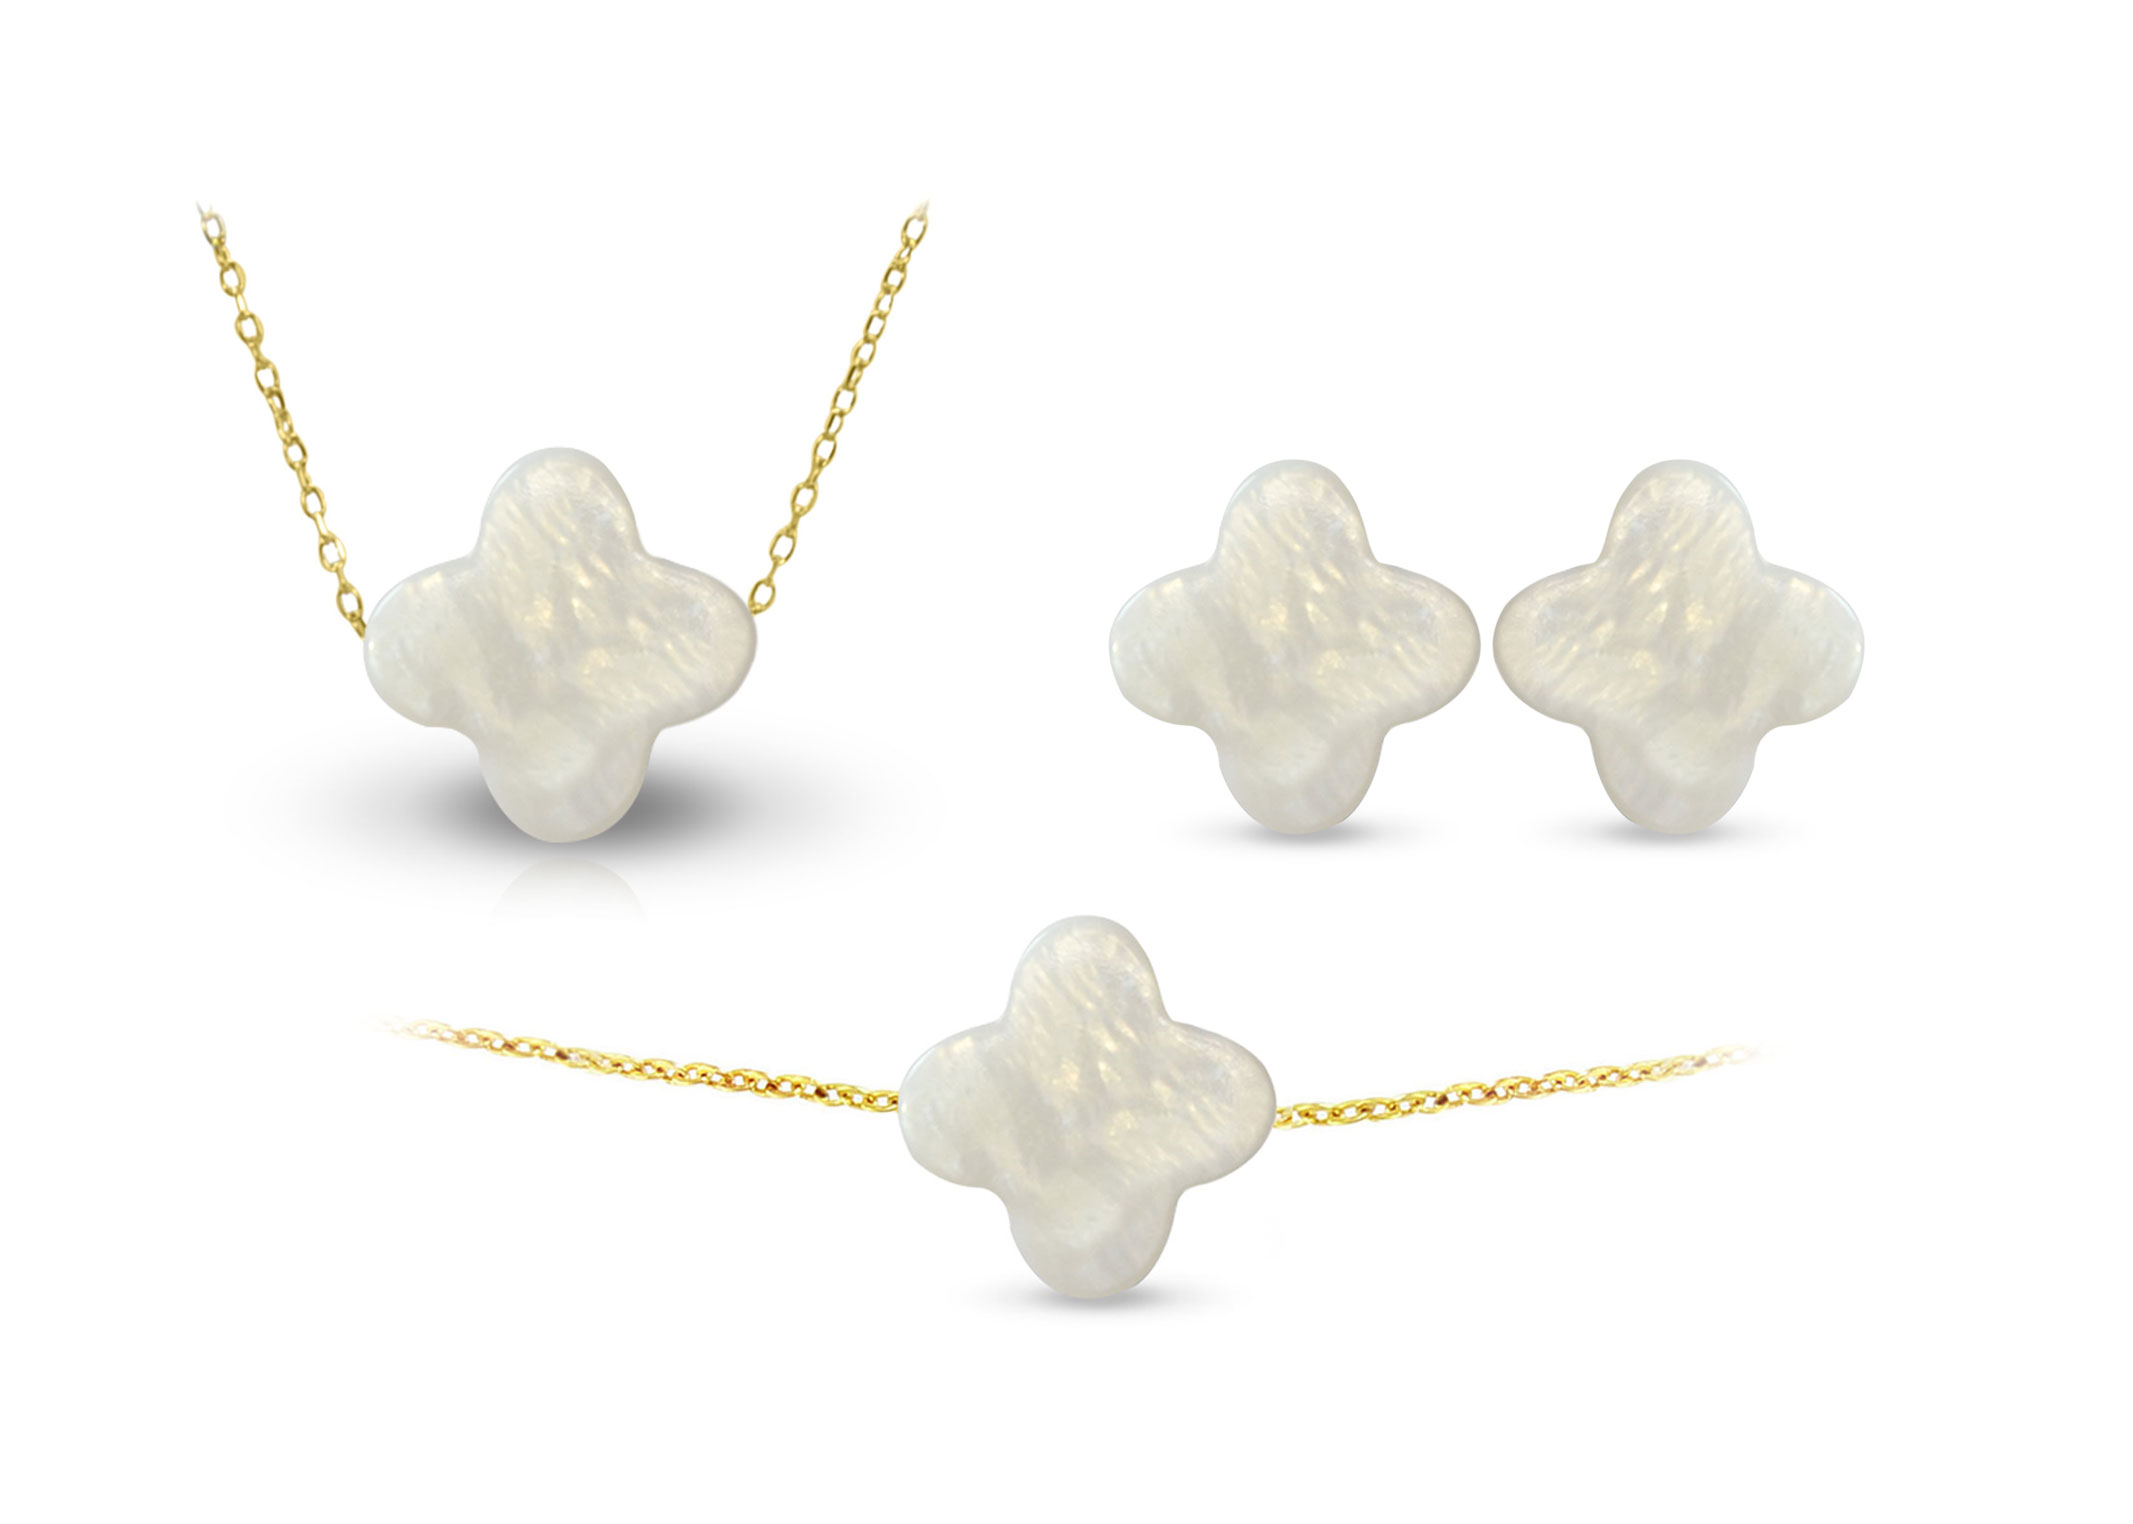 Vera Perla 18K Gold Plum Flower Shape Mother of Pearl Jewelry 3 pcs